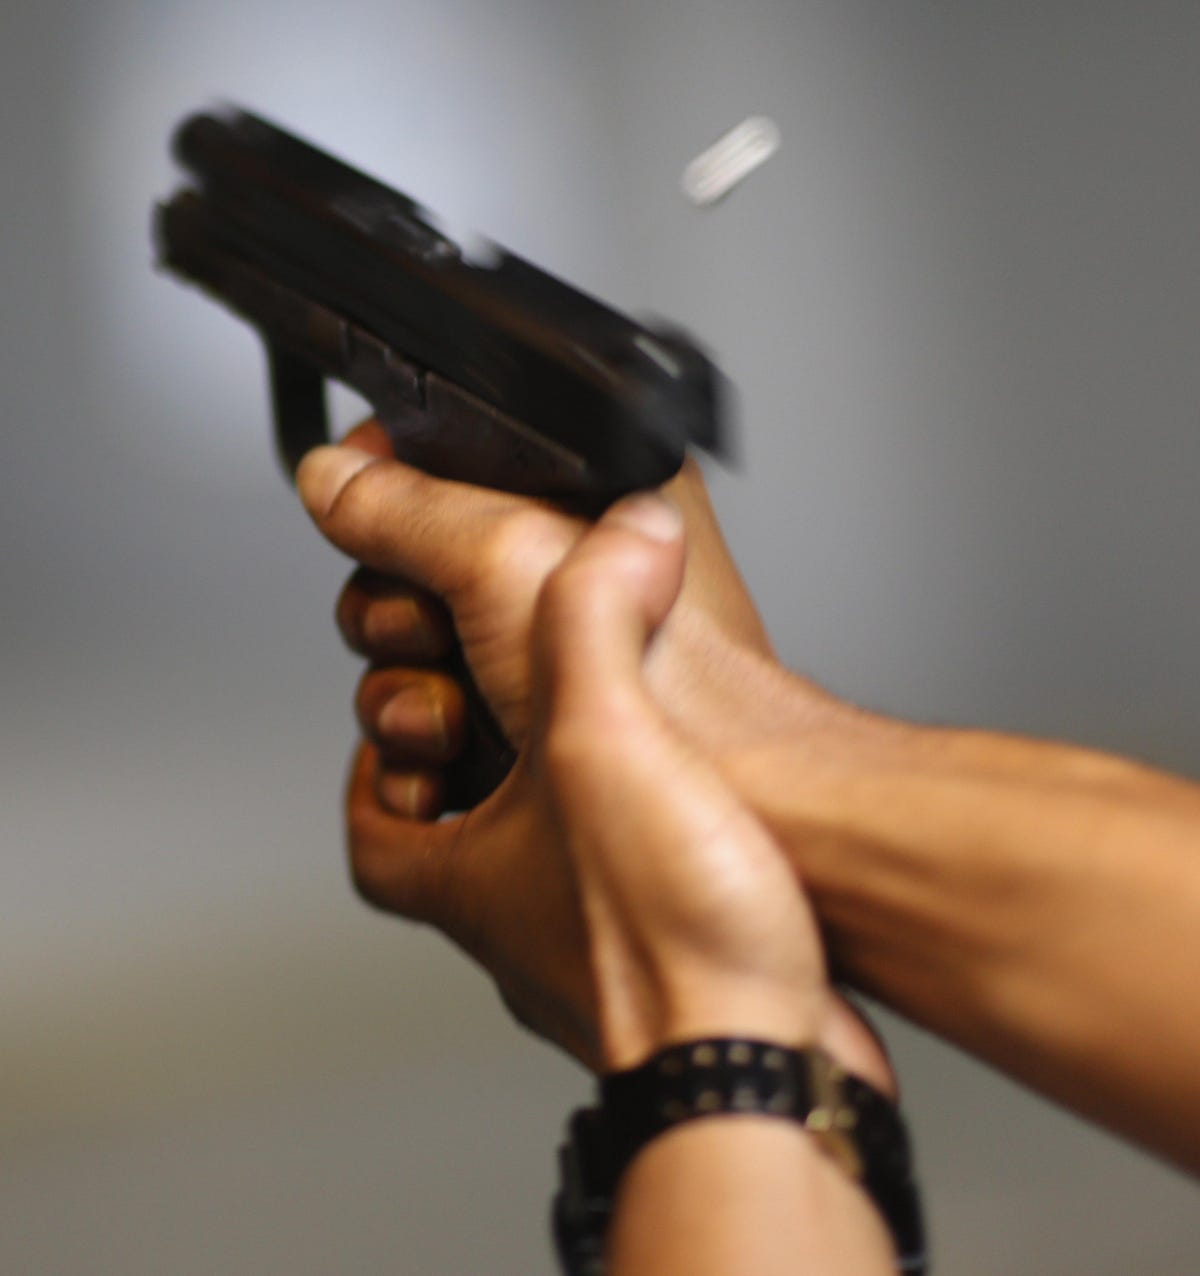 12 facts about gun control in Michigan: Background checks, who can buy